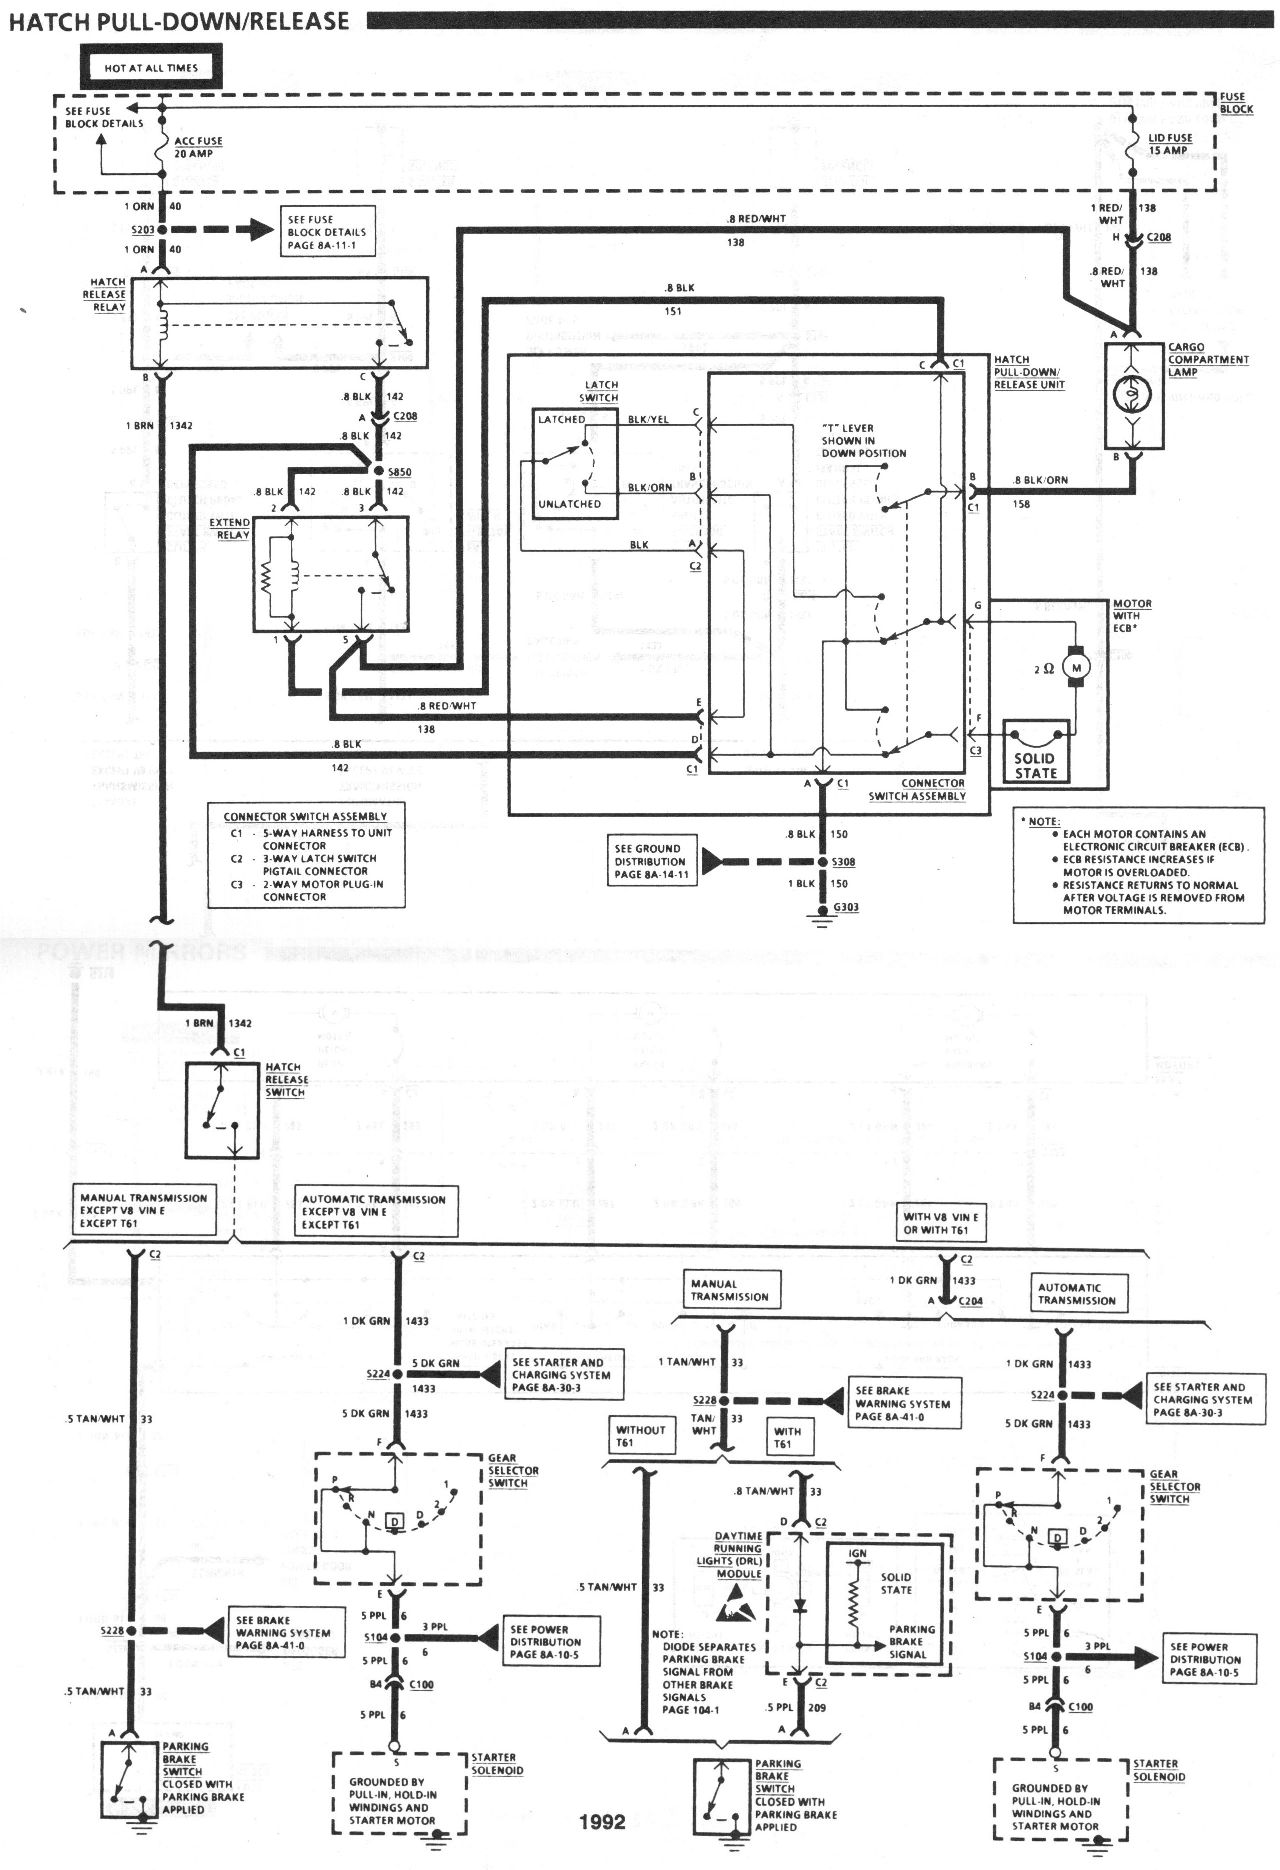 diagram_1992_hatch_pull_down_release trunk latch help??? (91 camaro) third generation f body message 1989 pontiac firebird ecm wiring diagram at eliteediting.co